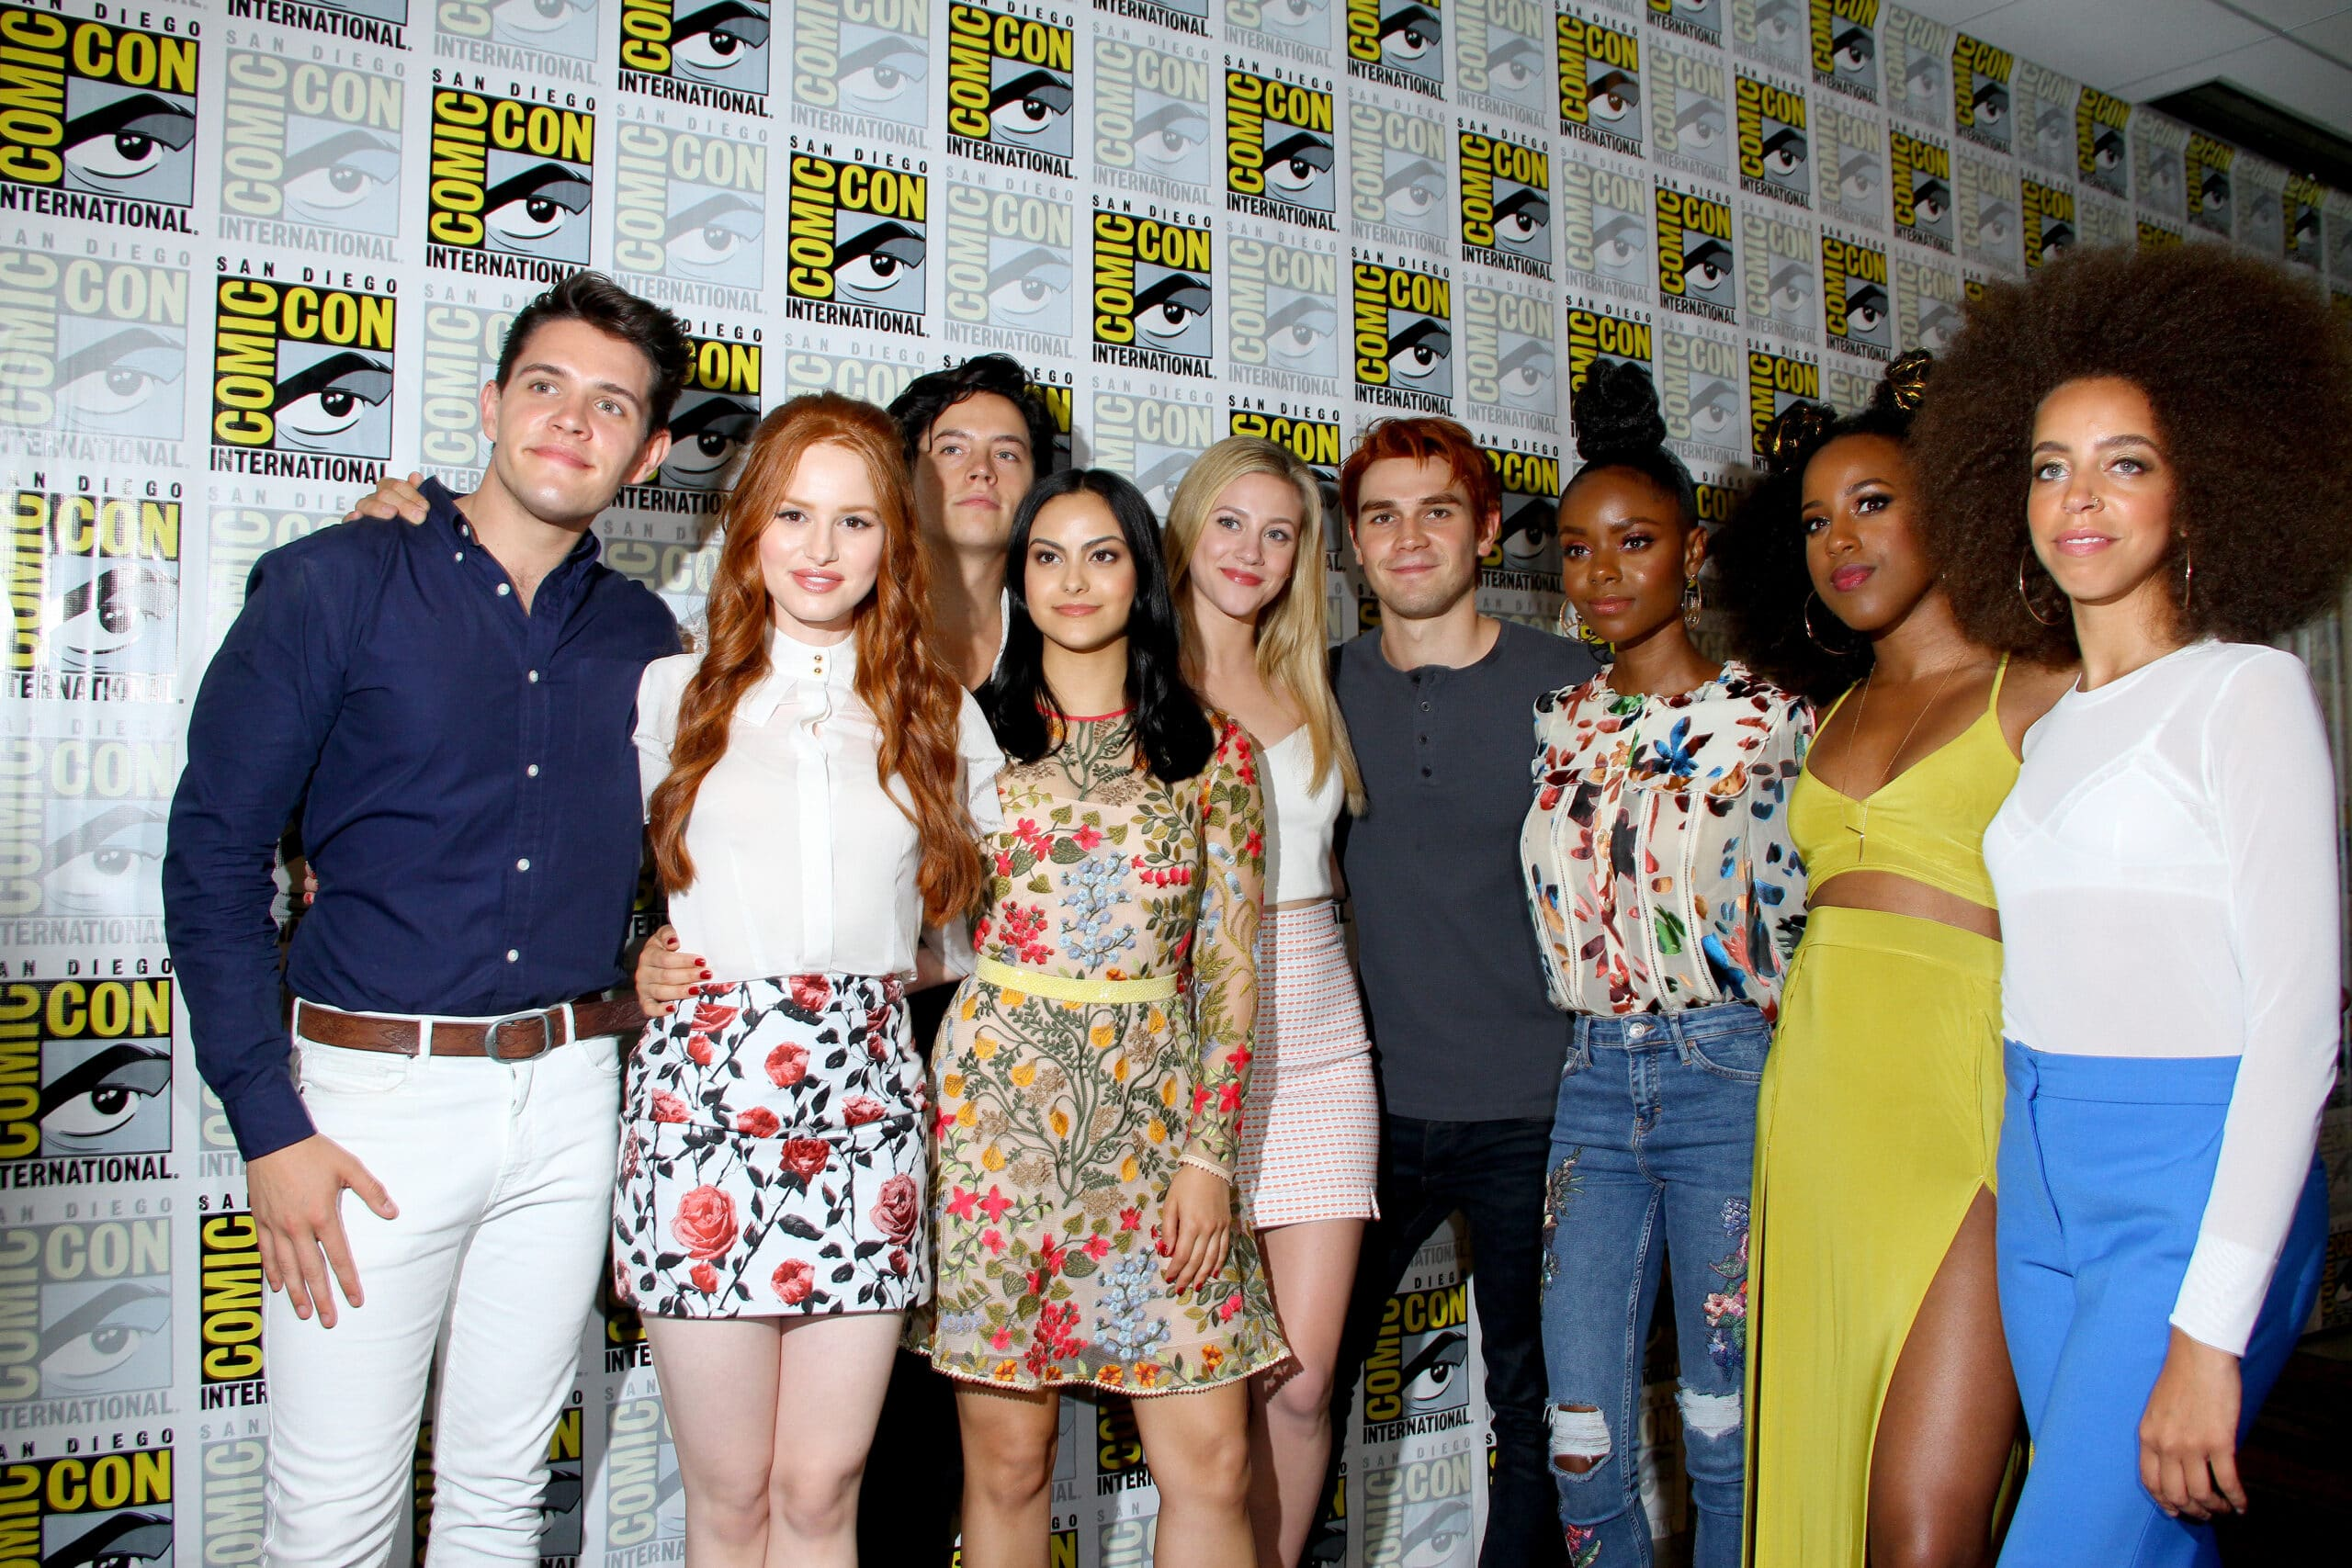 The cast of riverdale season 4